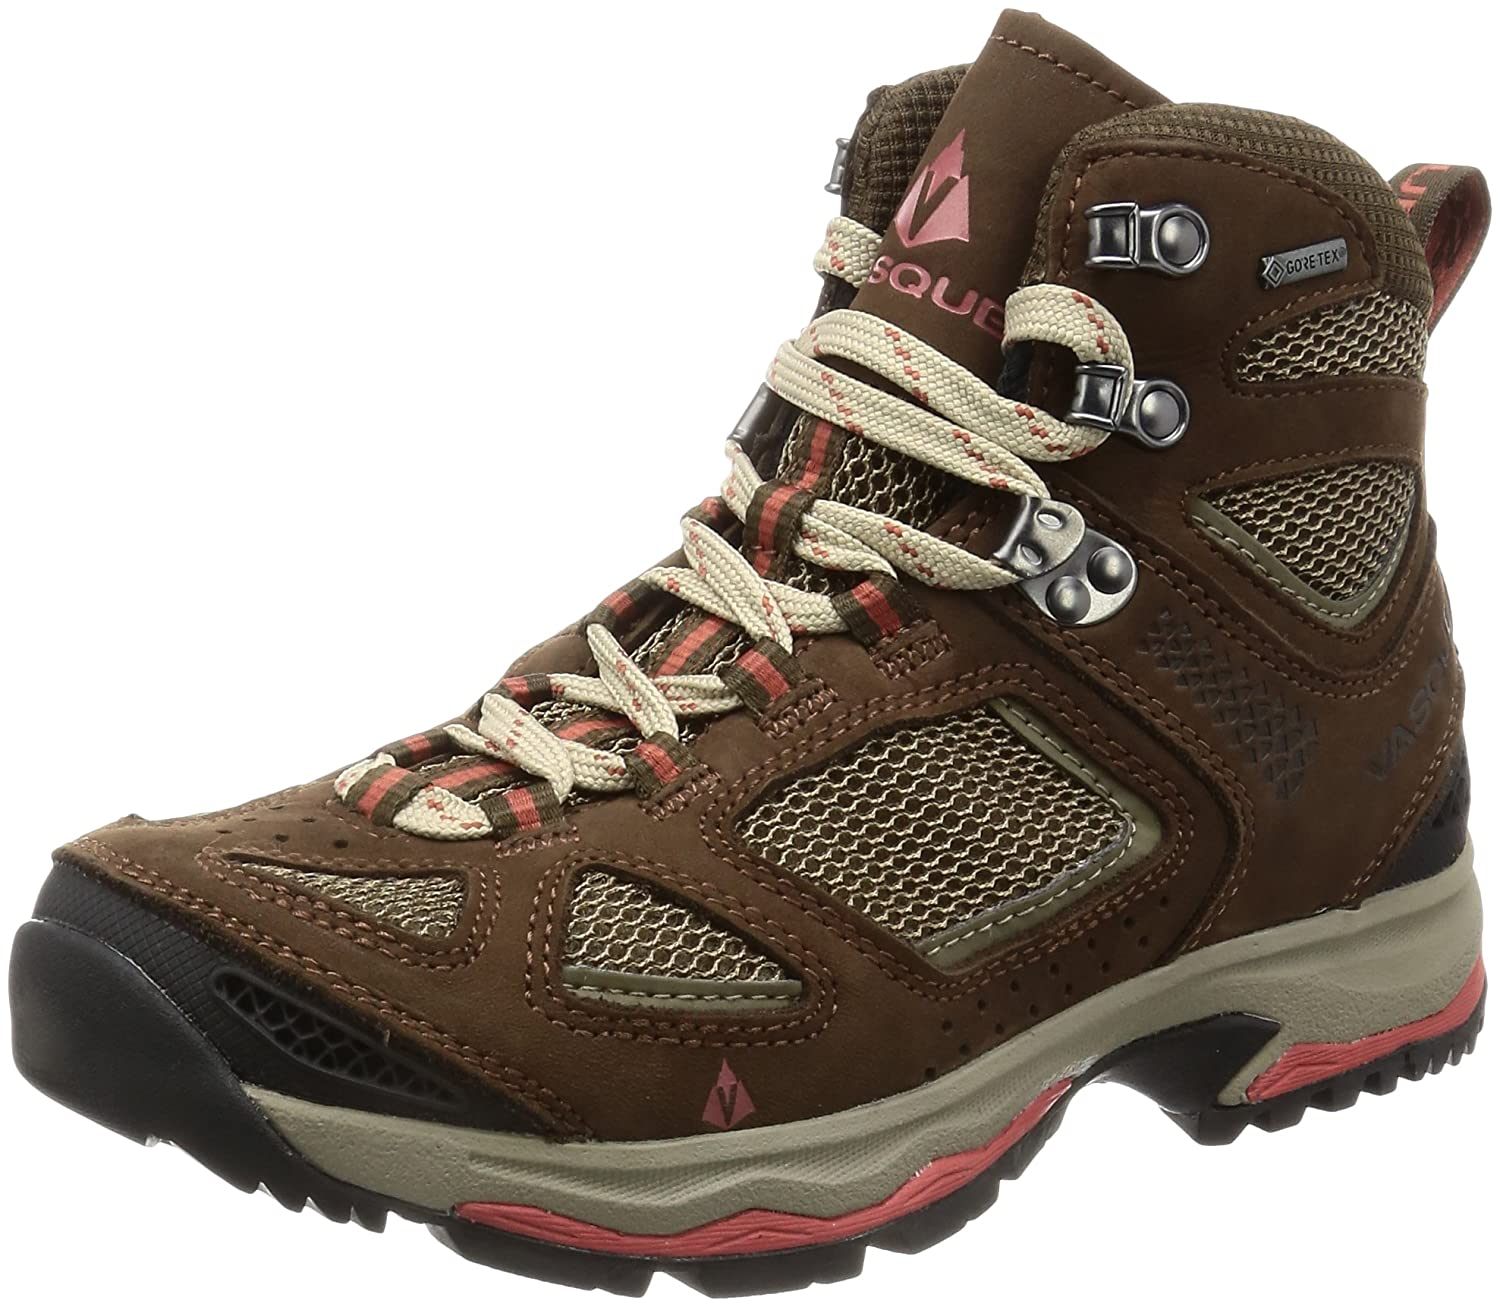 Vasque Women's Breeze III GTX Waterproof Hiking Boot B01F5K0HBG 6.5 M US|Slate Brown / Tandori Spice